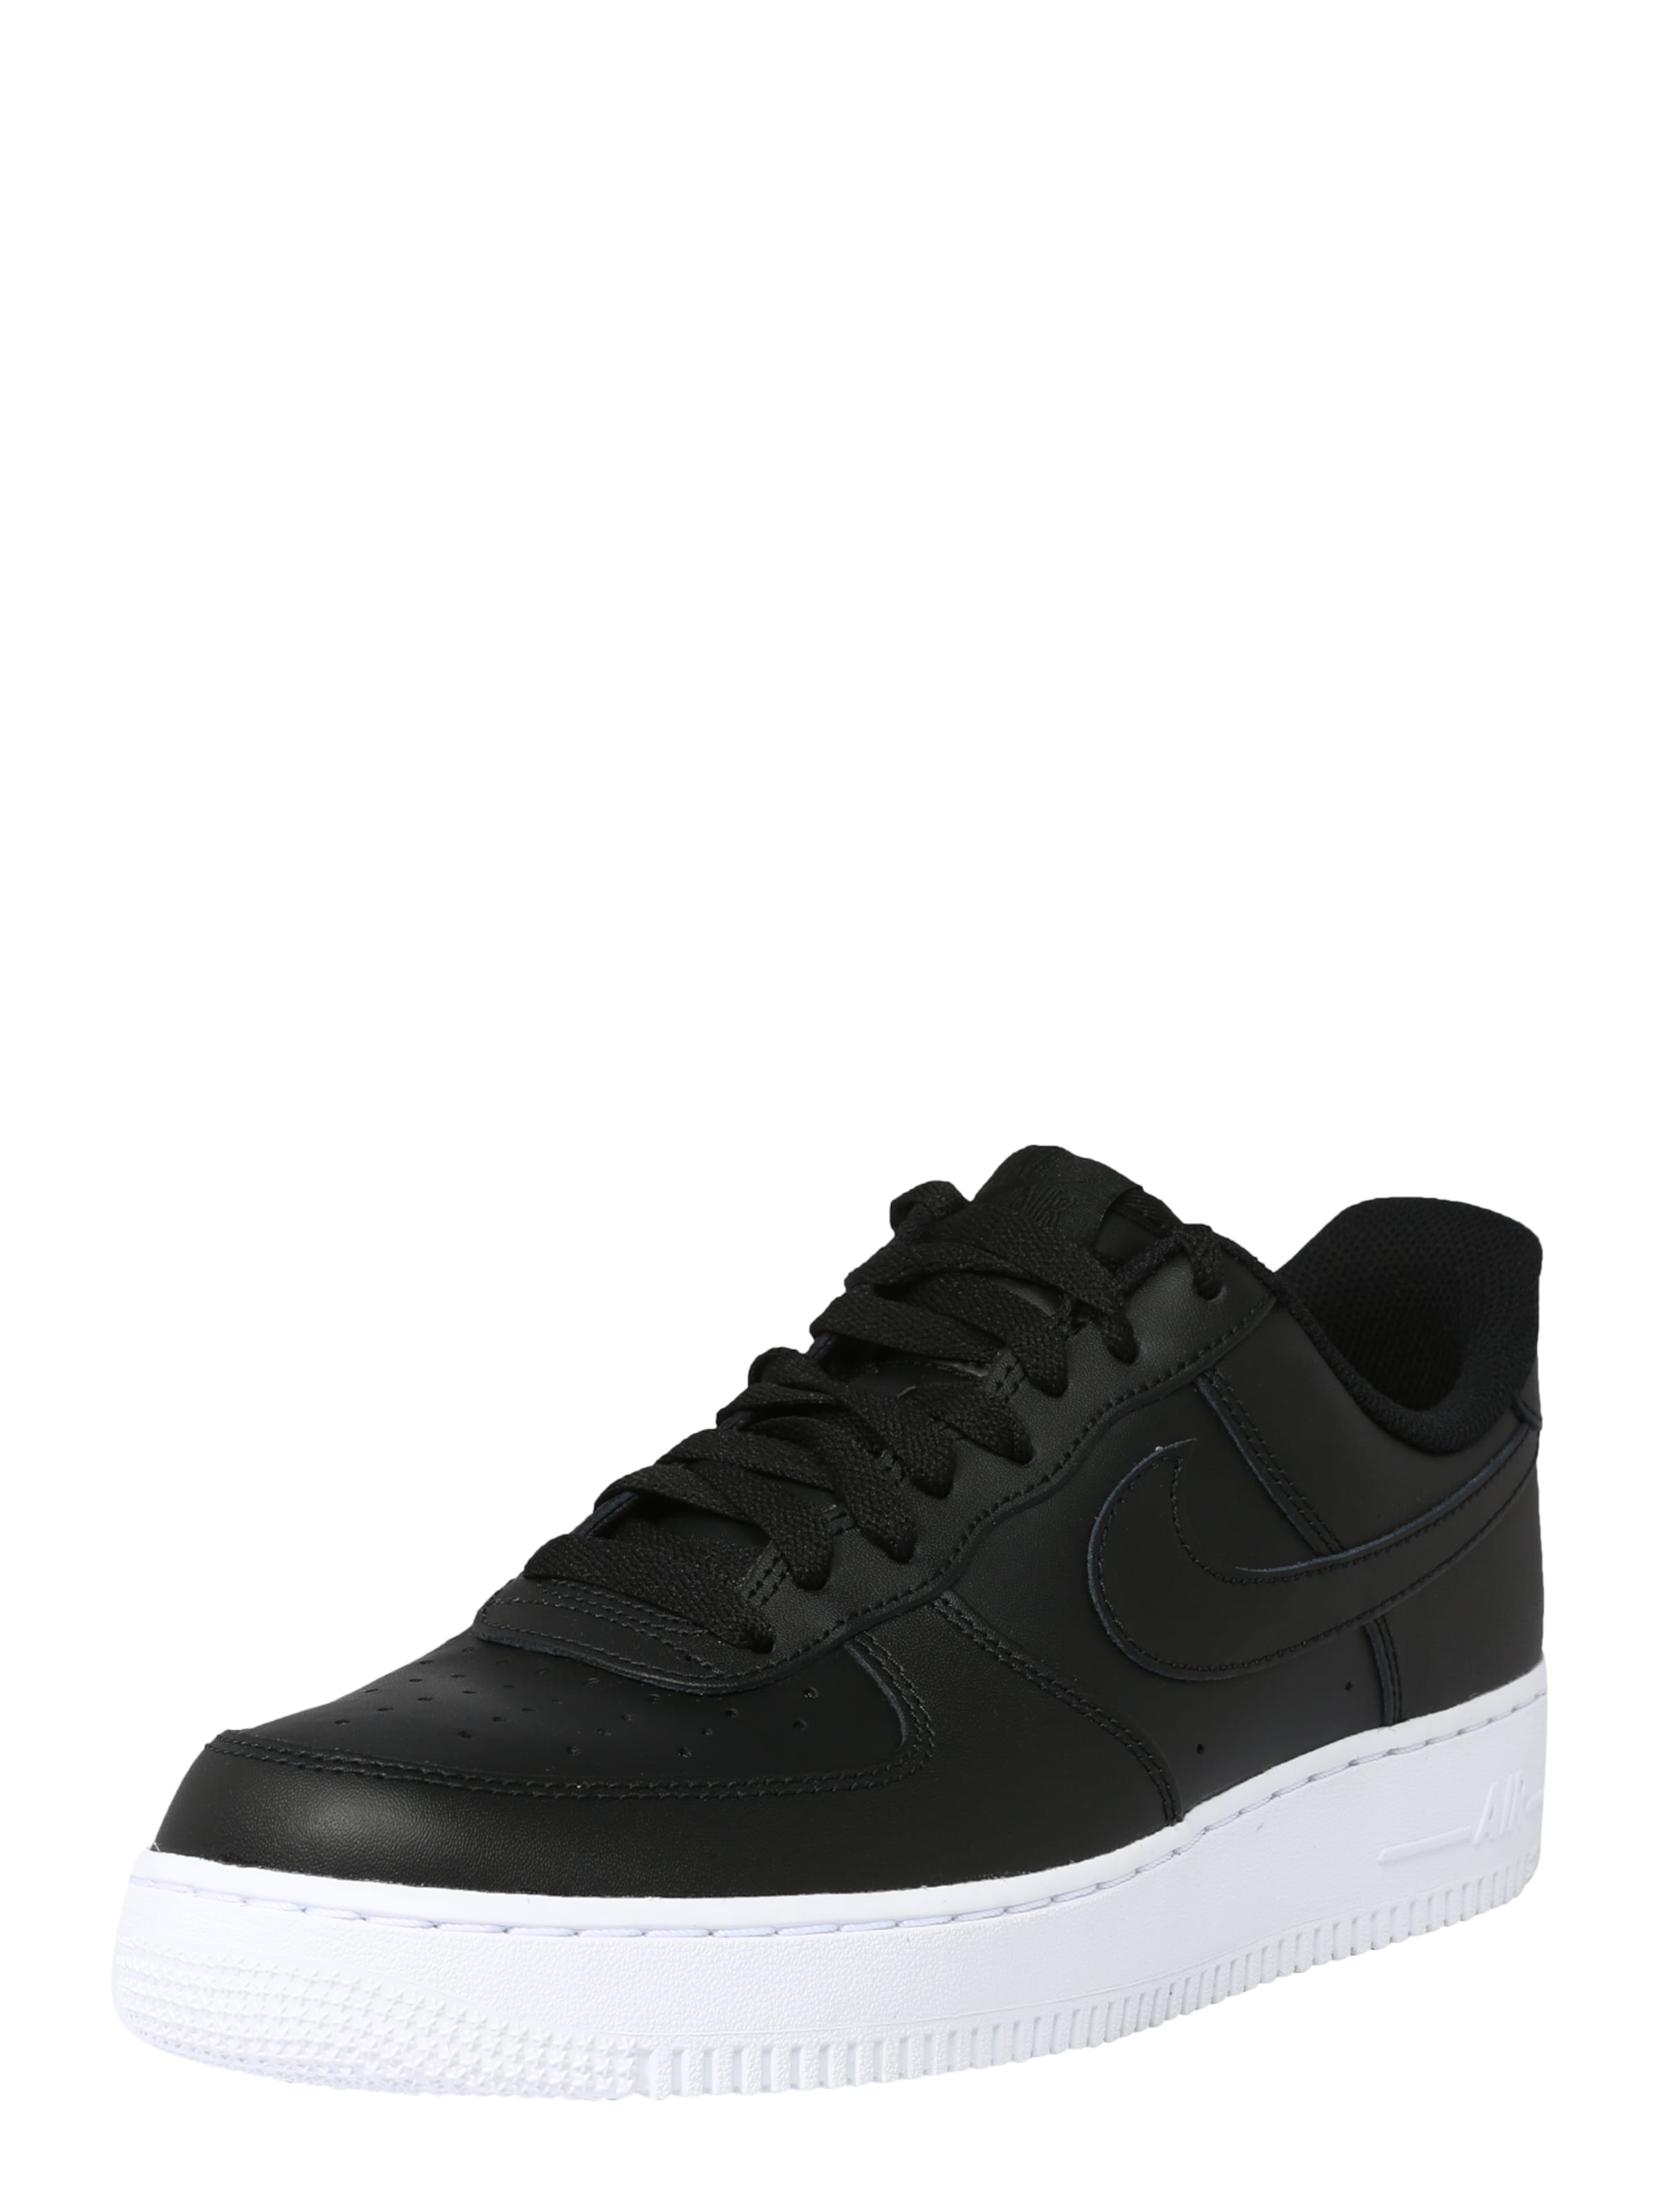 Sneaker Nike Force 1' Sportswear 'air In SchwarzWeiß 8nPXZNk0Ow